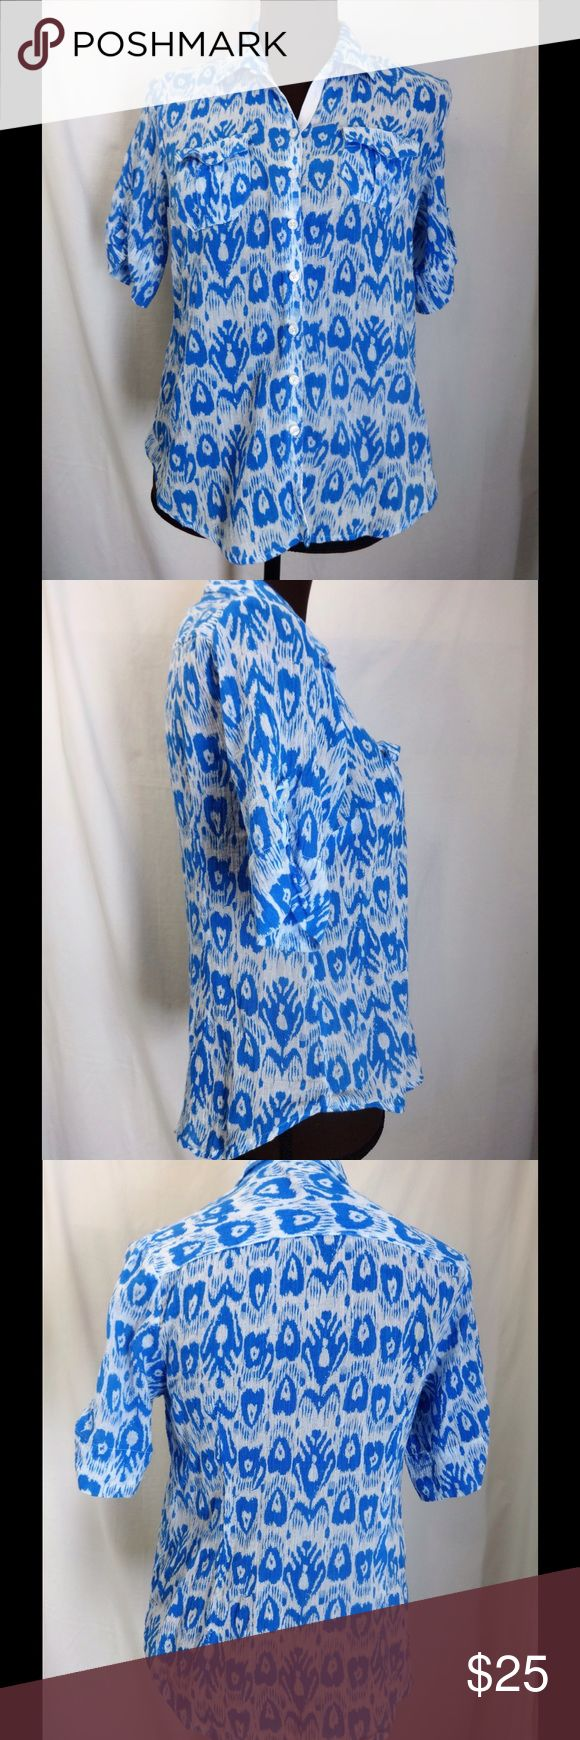 Women's Short Sleeve Button Down Top Lightweight, short sleeve, button down shirt. Two small pockets in the front. Pretty blue and white pattern. 100% cotton. Armpit to armpit 18 inches. Length 23 inches. Banana Republic Tops Button Down Shirts